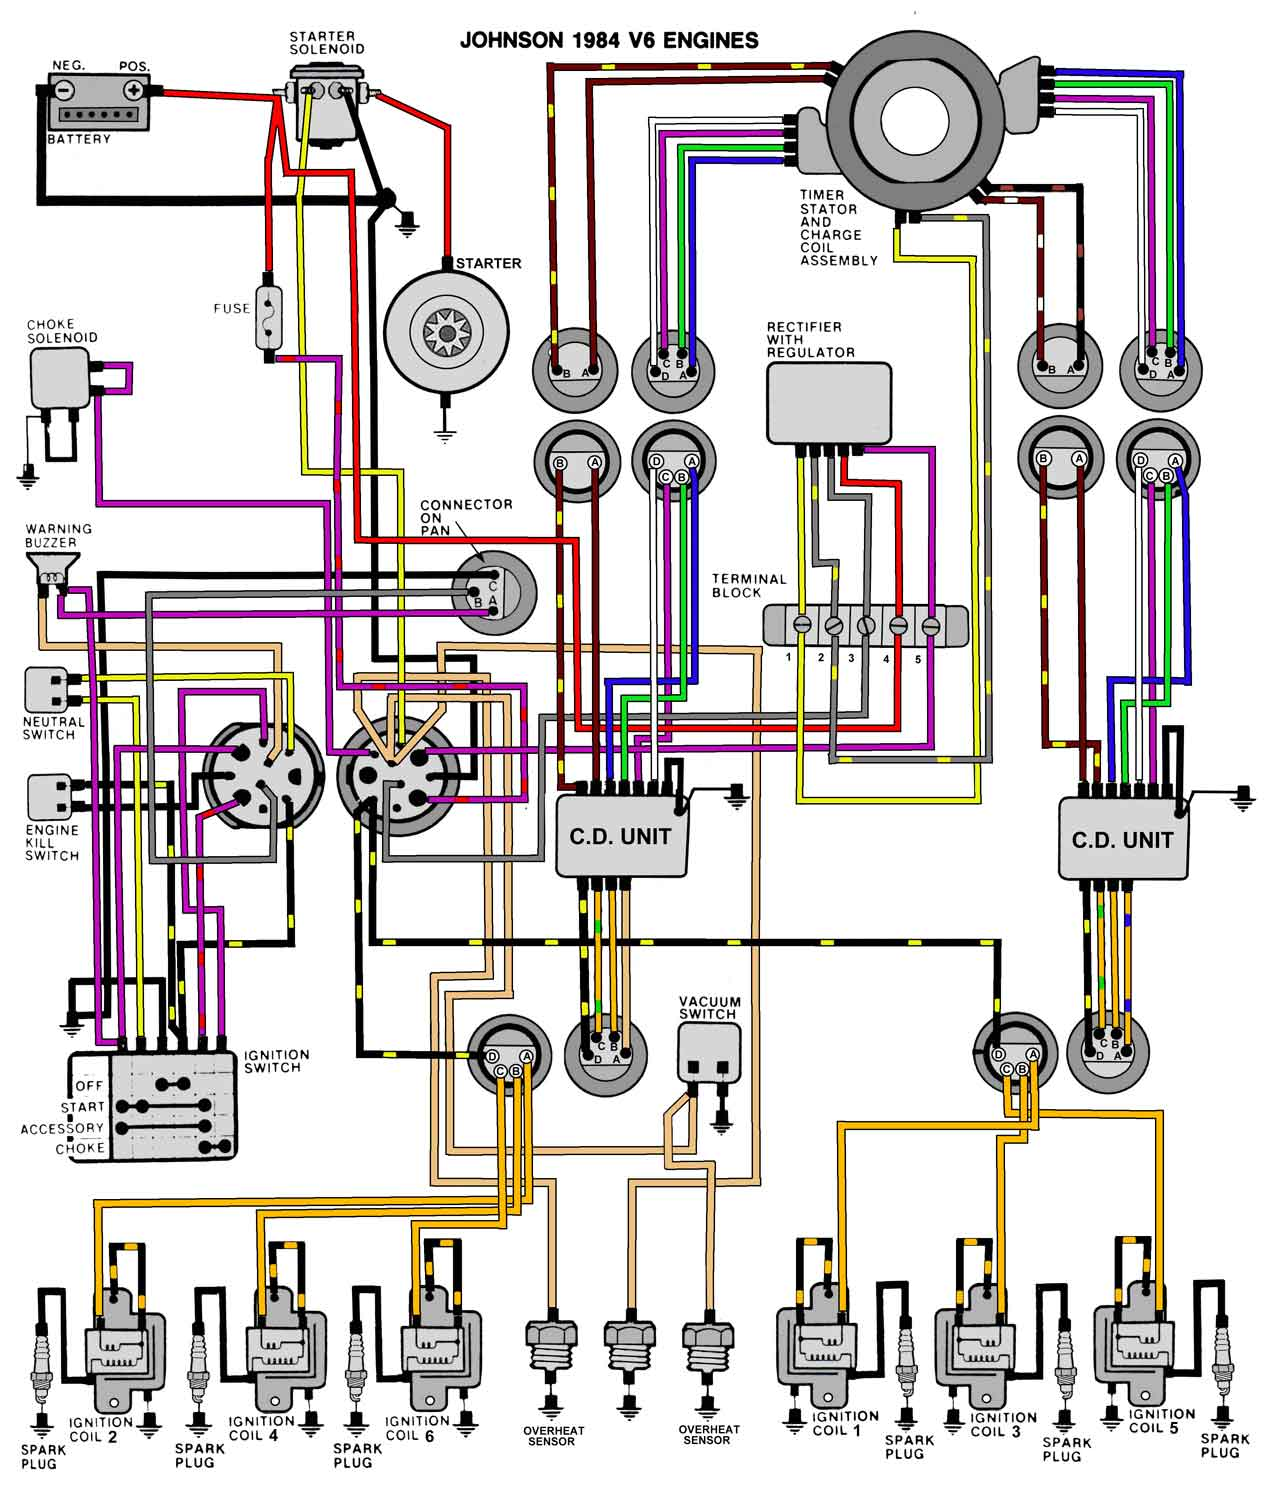 wiring diagram motor dual 4 ohm speaker evinrude johnson outboard diagrams mastertech marine